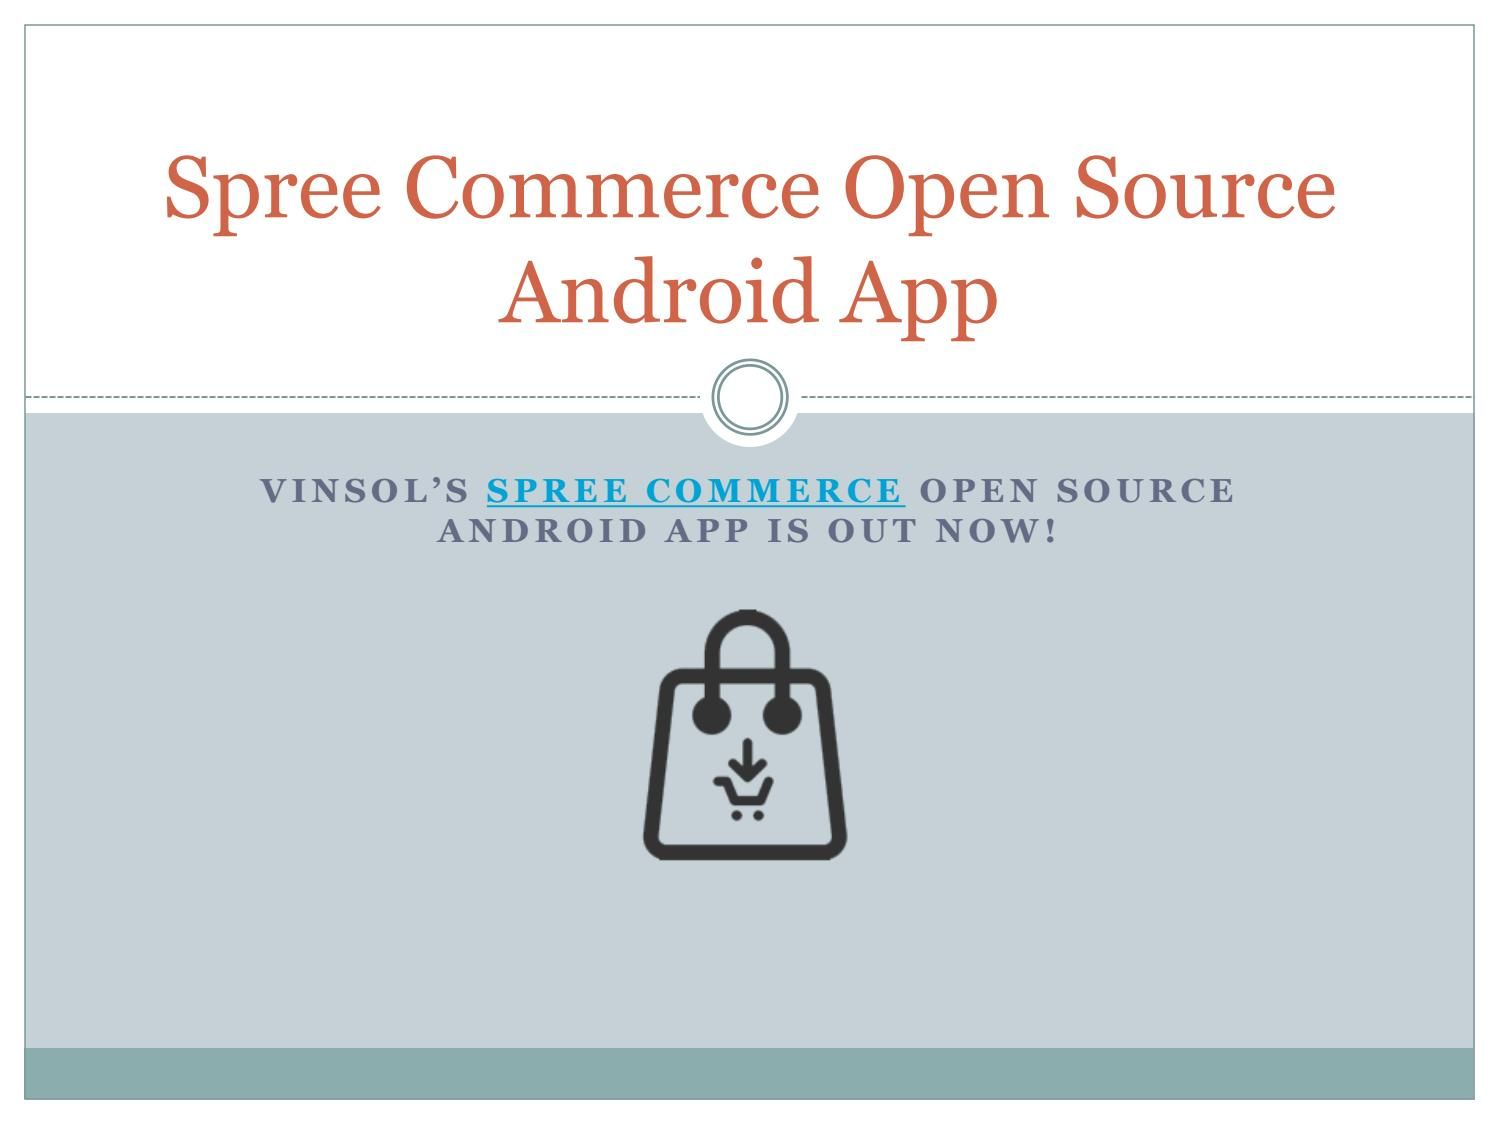 Spree Commerce Open Source Android App Android Apps App Open